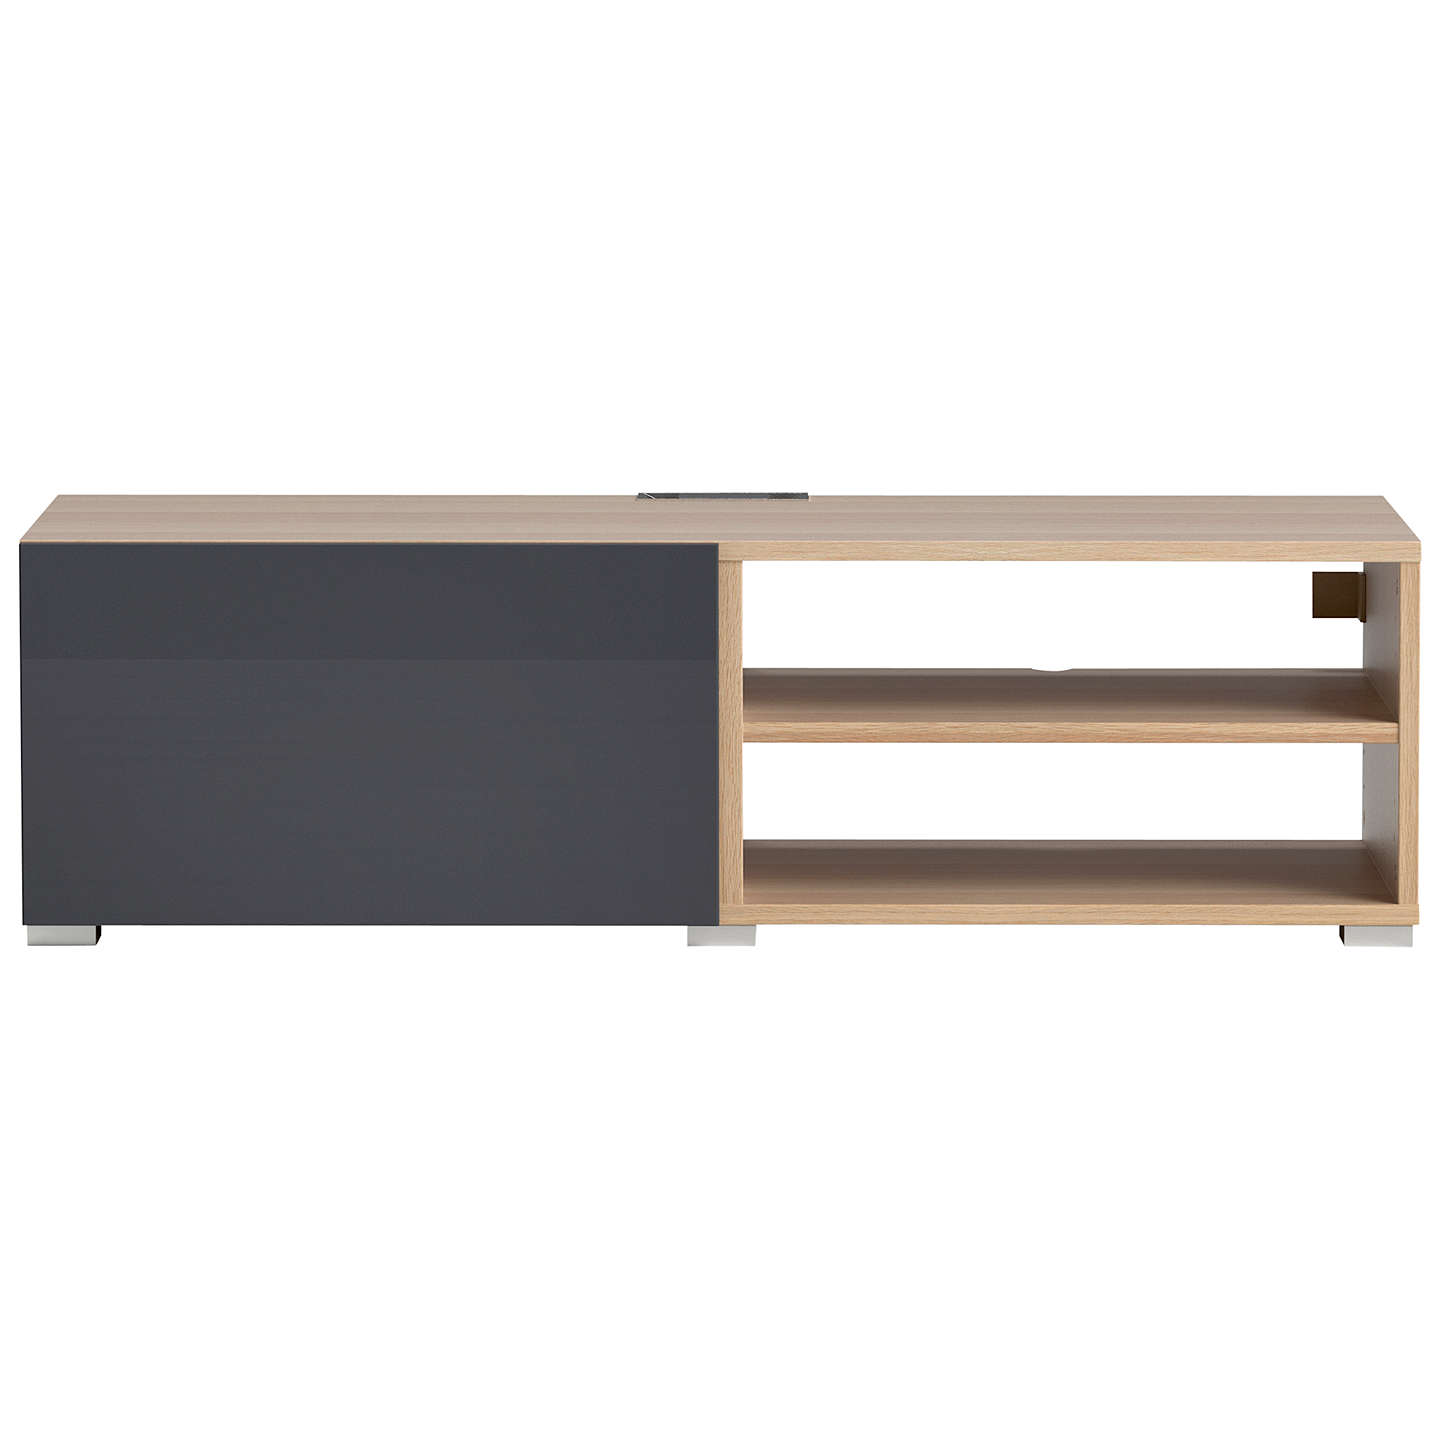 BuyHouse by John Lewis Mix it Media Unit - Oak frame / Gloss steel door Online at johnlewis.com